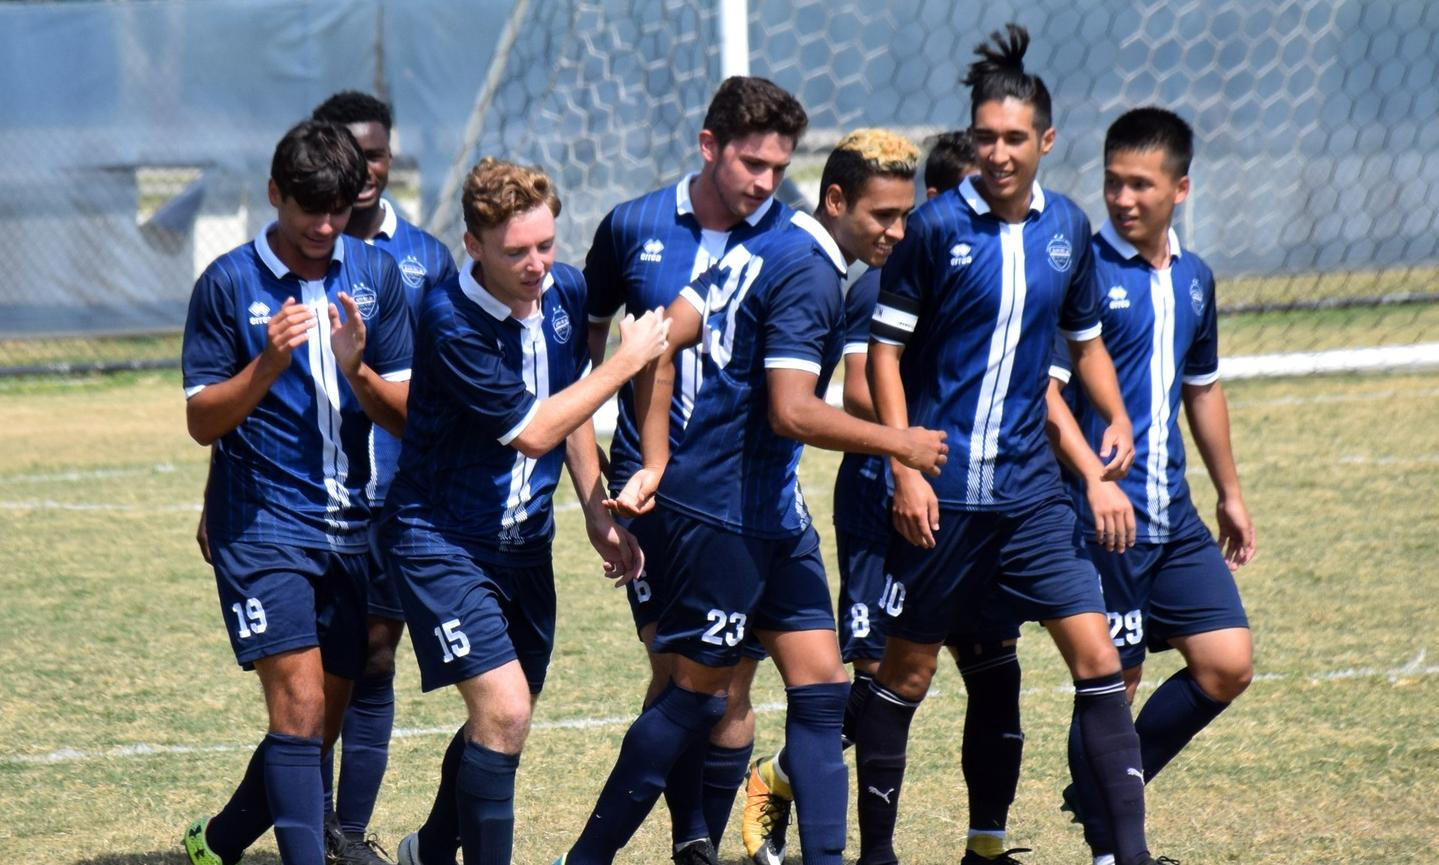 Men's soccer team rolls in 7-0 conference win at Cypress